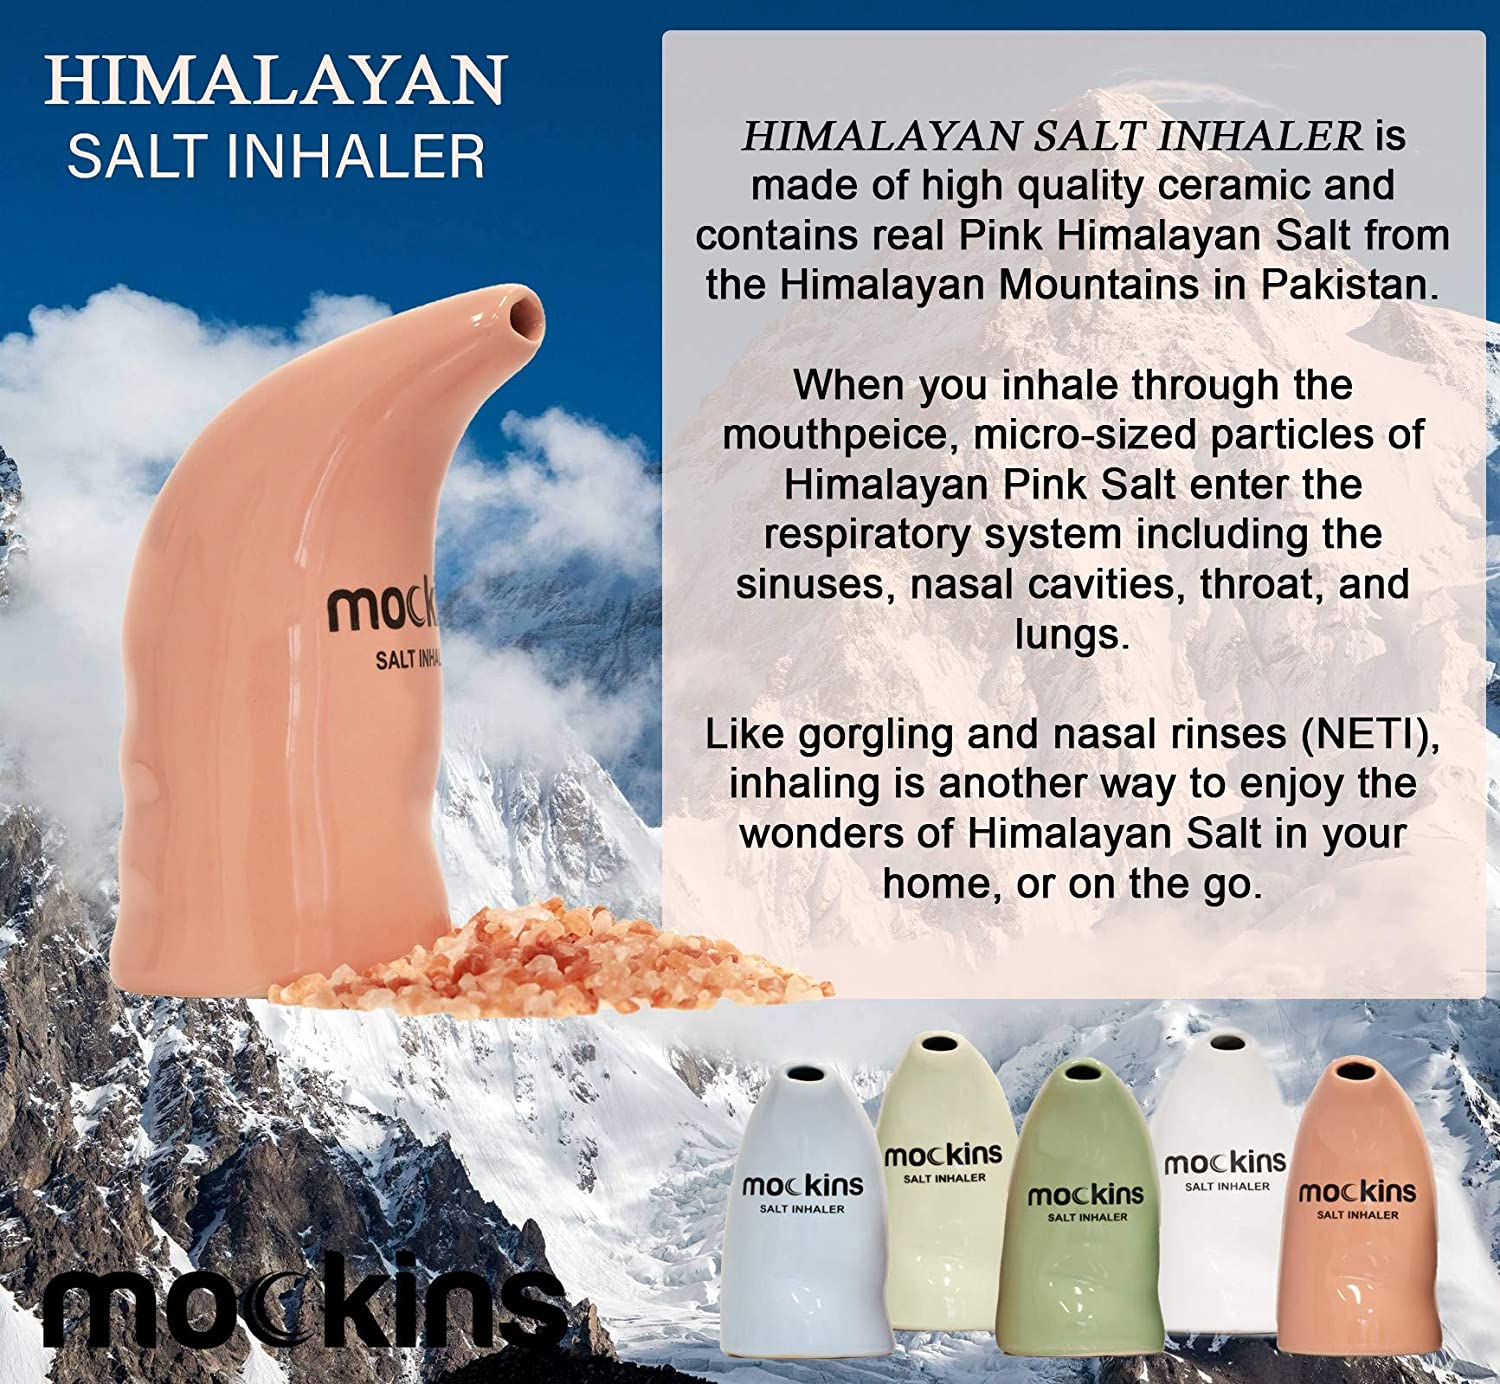 Mockins Ceramic Himalayan Salt Inhaler, Asthma & Allergy Relief - Pink (MHHSINHAPNK89)